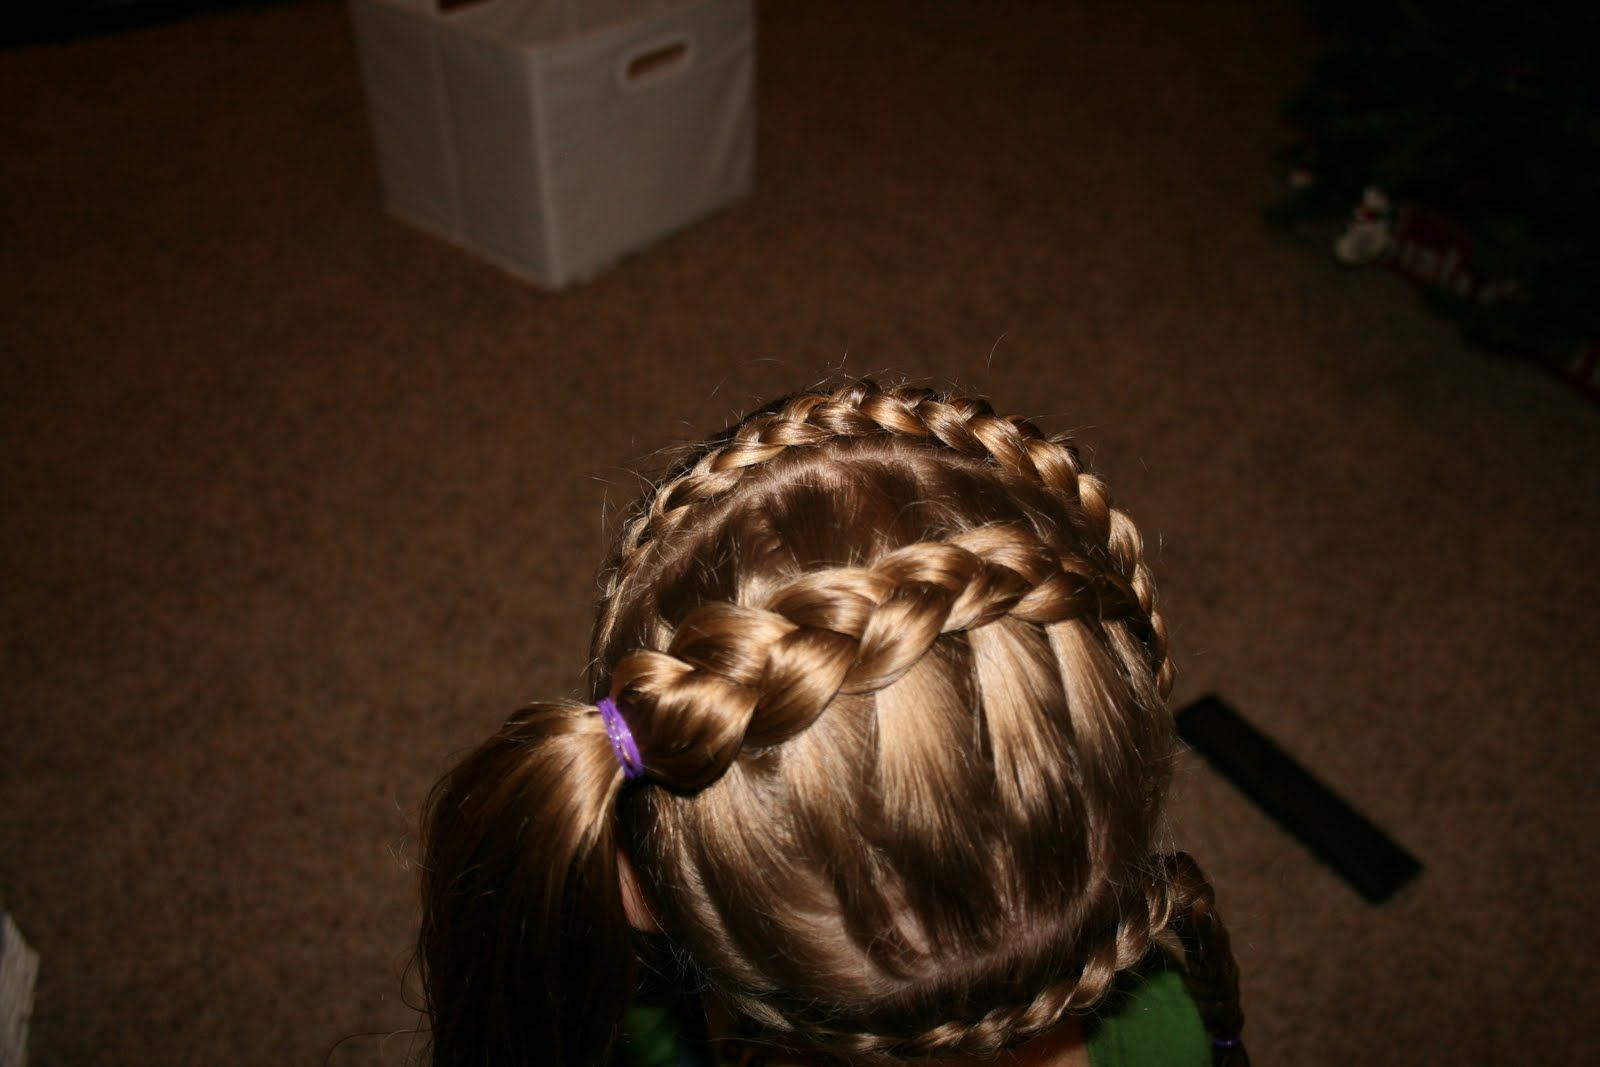 Some braids hair dous for gianna pinterest